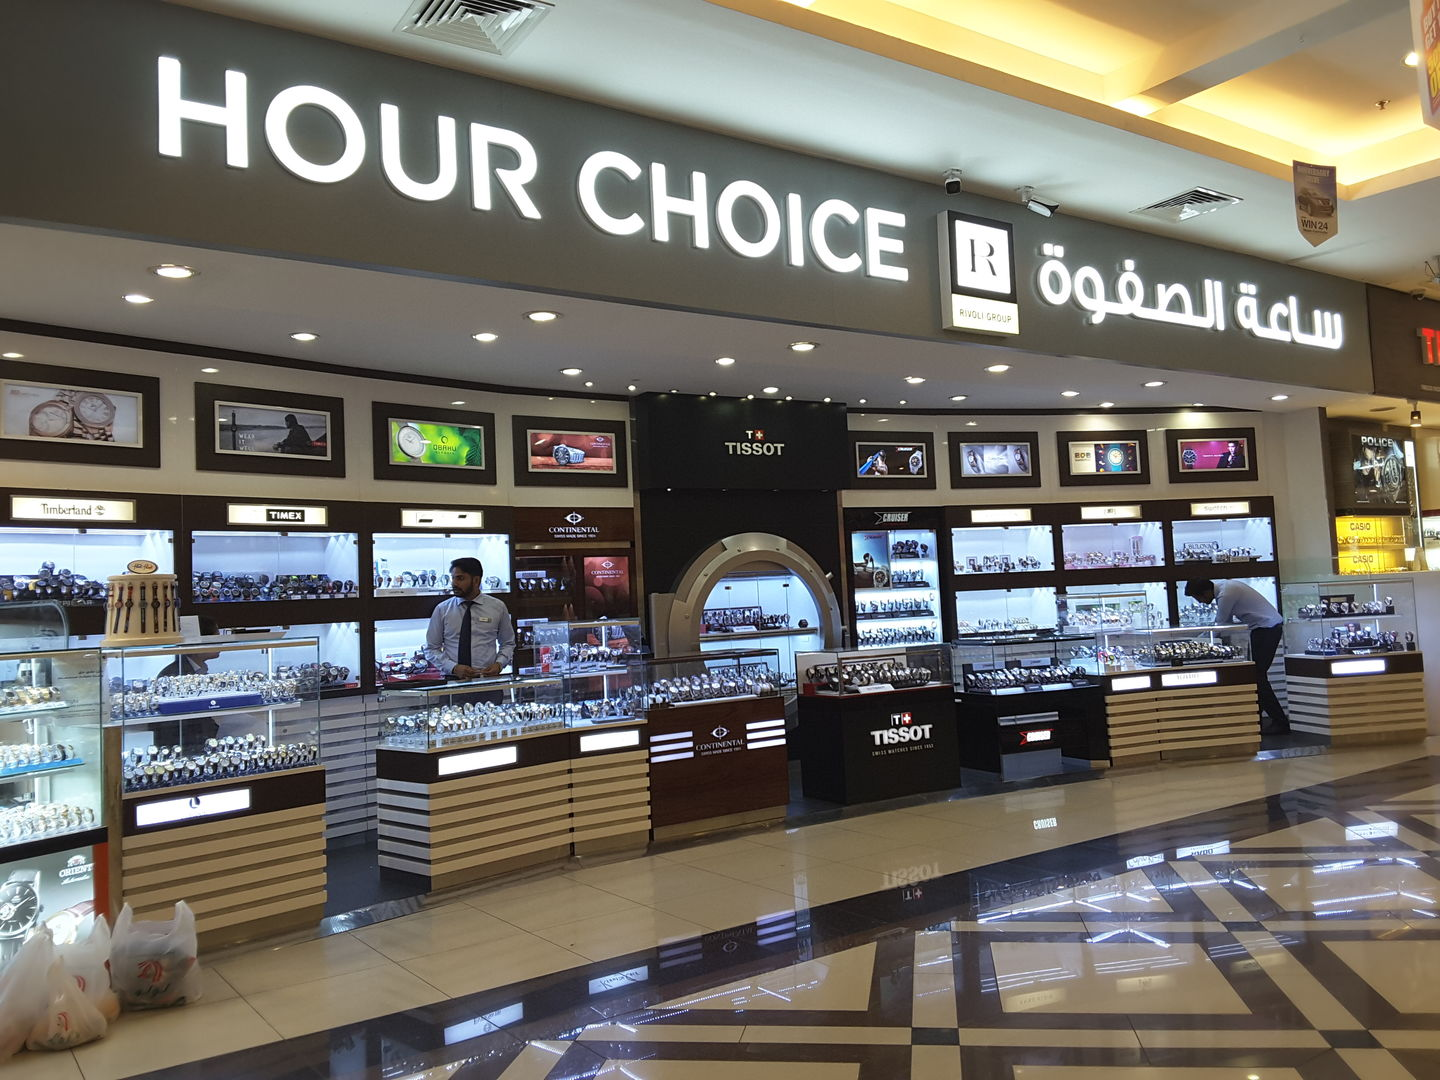 HiDubai-business-hour-choice-shopping-watches-eyewear-al-qusais-1-dubai-2